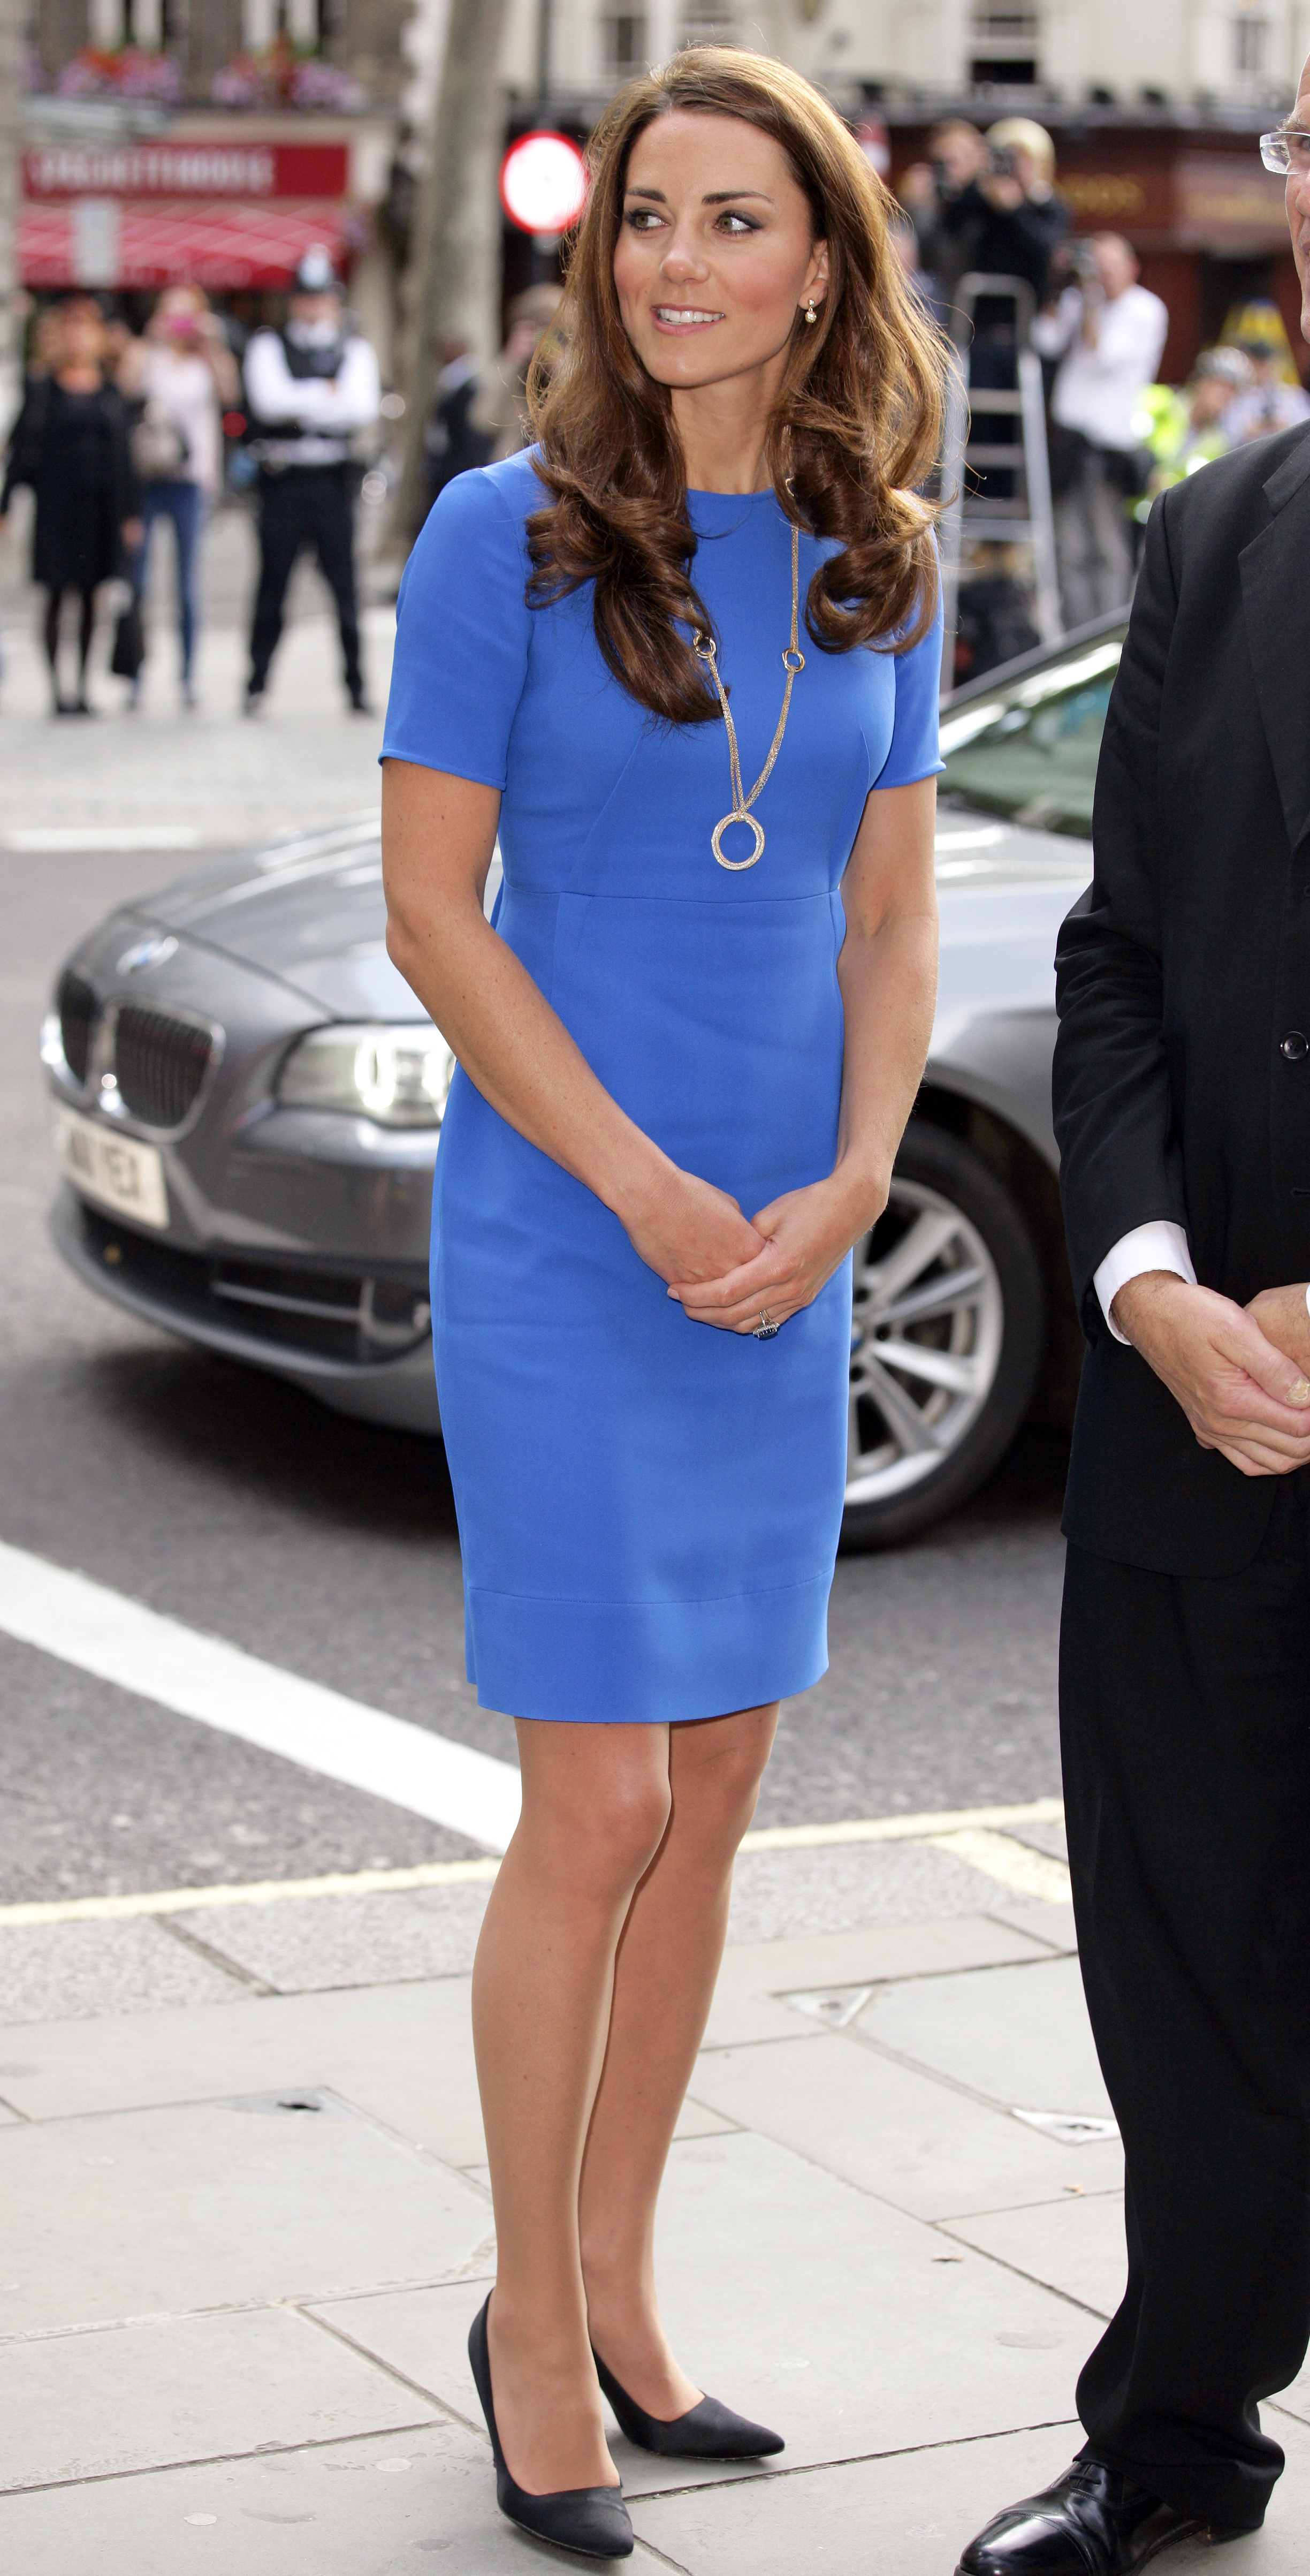 "<strong>Royal Blue</strong>                                   On July 19, 2012, the Duchess wore an $800 electric blue Stella McCartney dress to the National Portrait Gallery in London. Middleton was at the museum to unveil ""The Road to 2012: Aiming High,"" a portrait exhibition of athletes competing in the 2012 Games. McCartney designed the Olympic uniforms for the 2012 U.K. team."